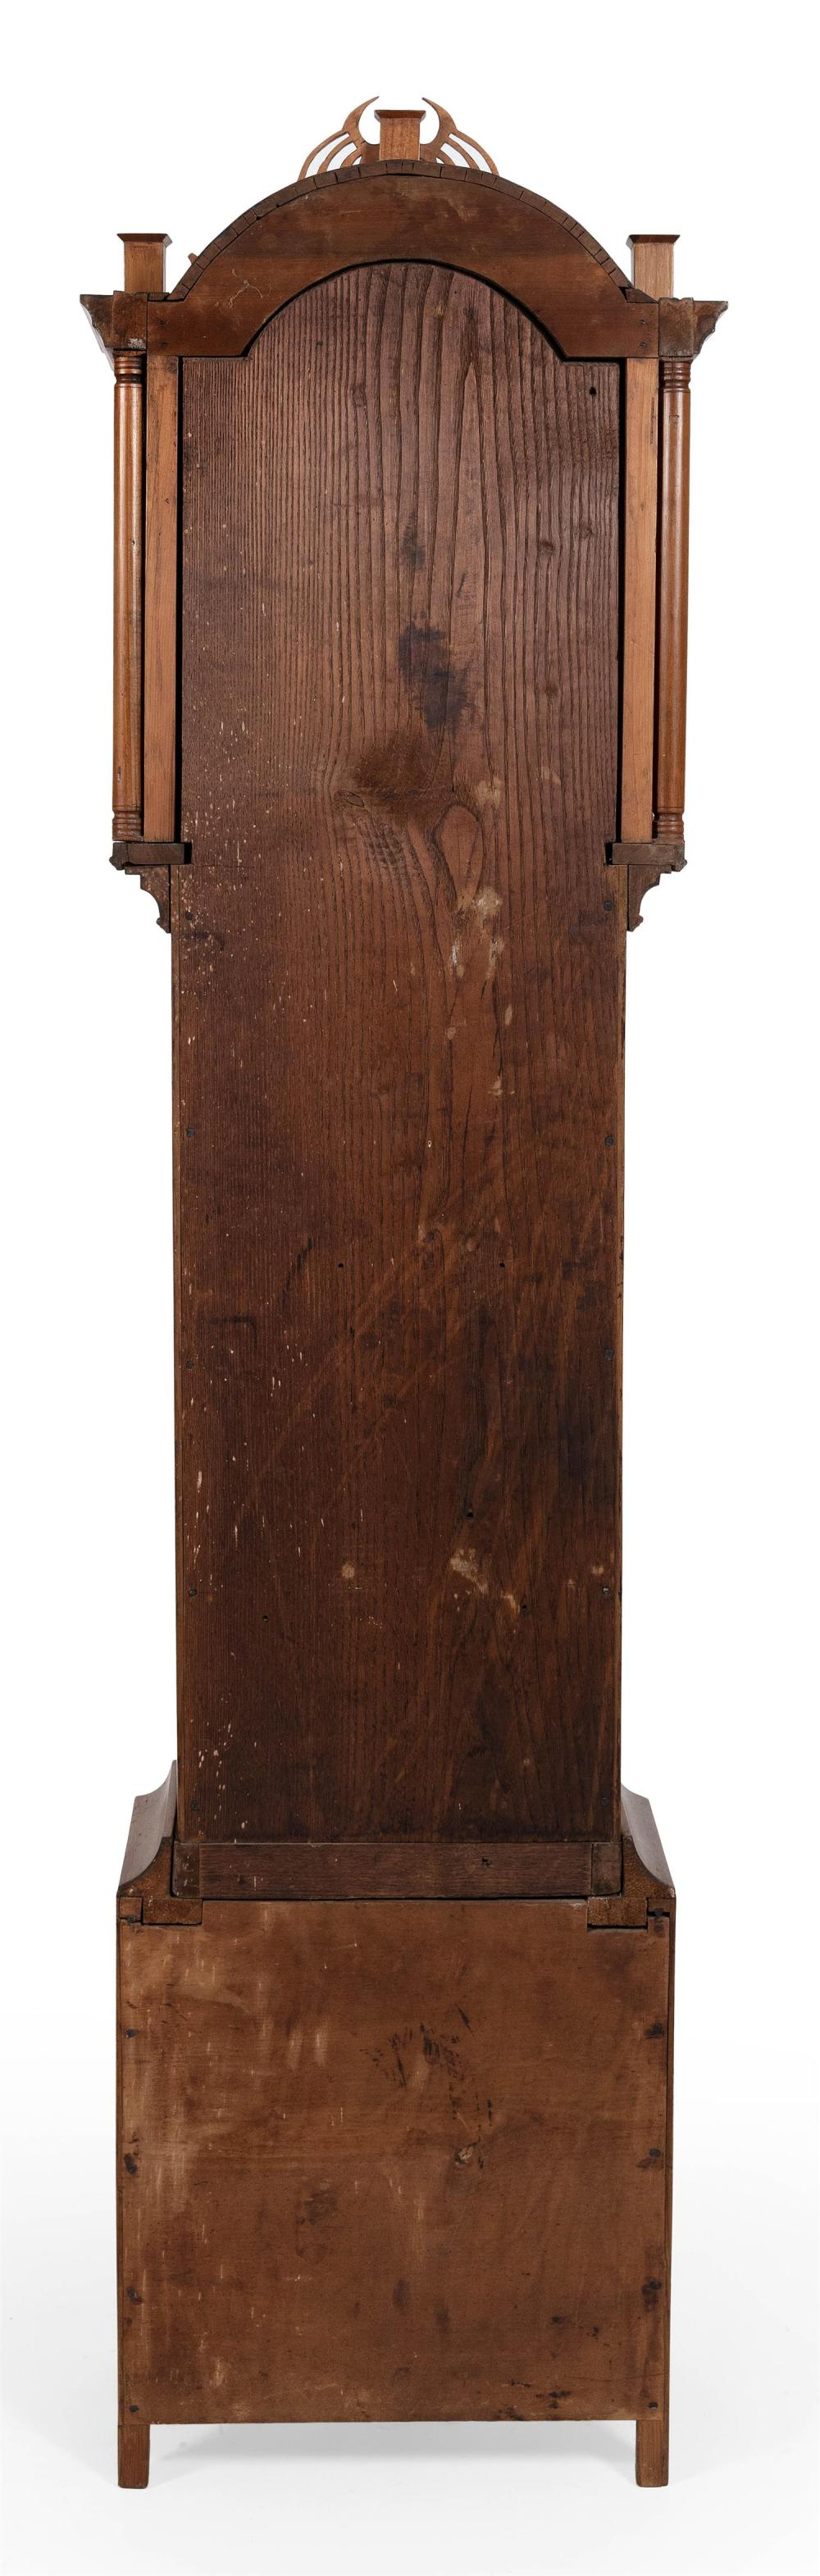 TALL-CASE CLOCK ATTRIBUTED TO SILAS HOADLEY Cherry case. Bonnet with three plinths joined by pierced fretwork, and an arched glazed...